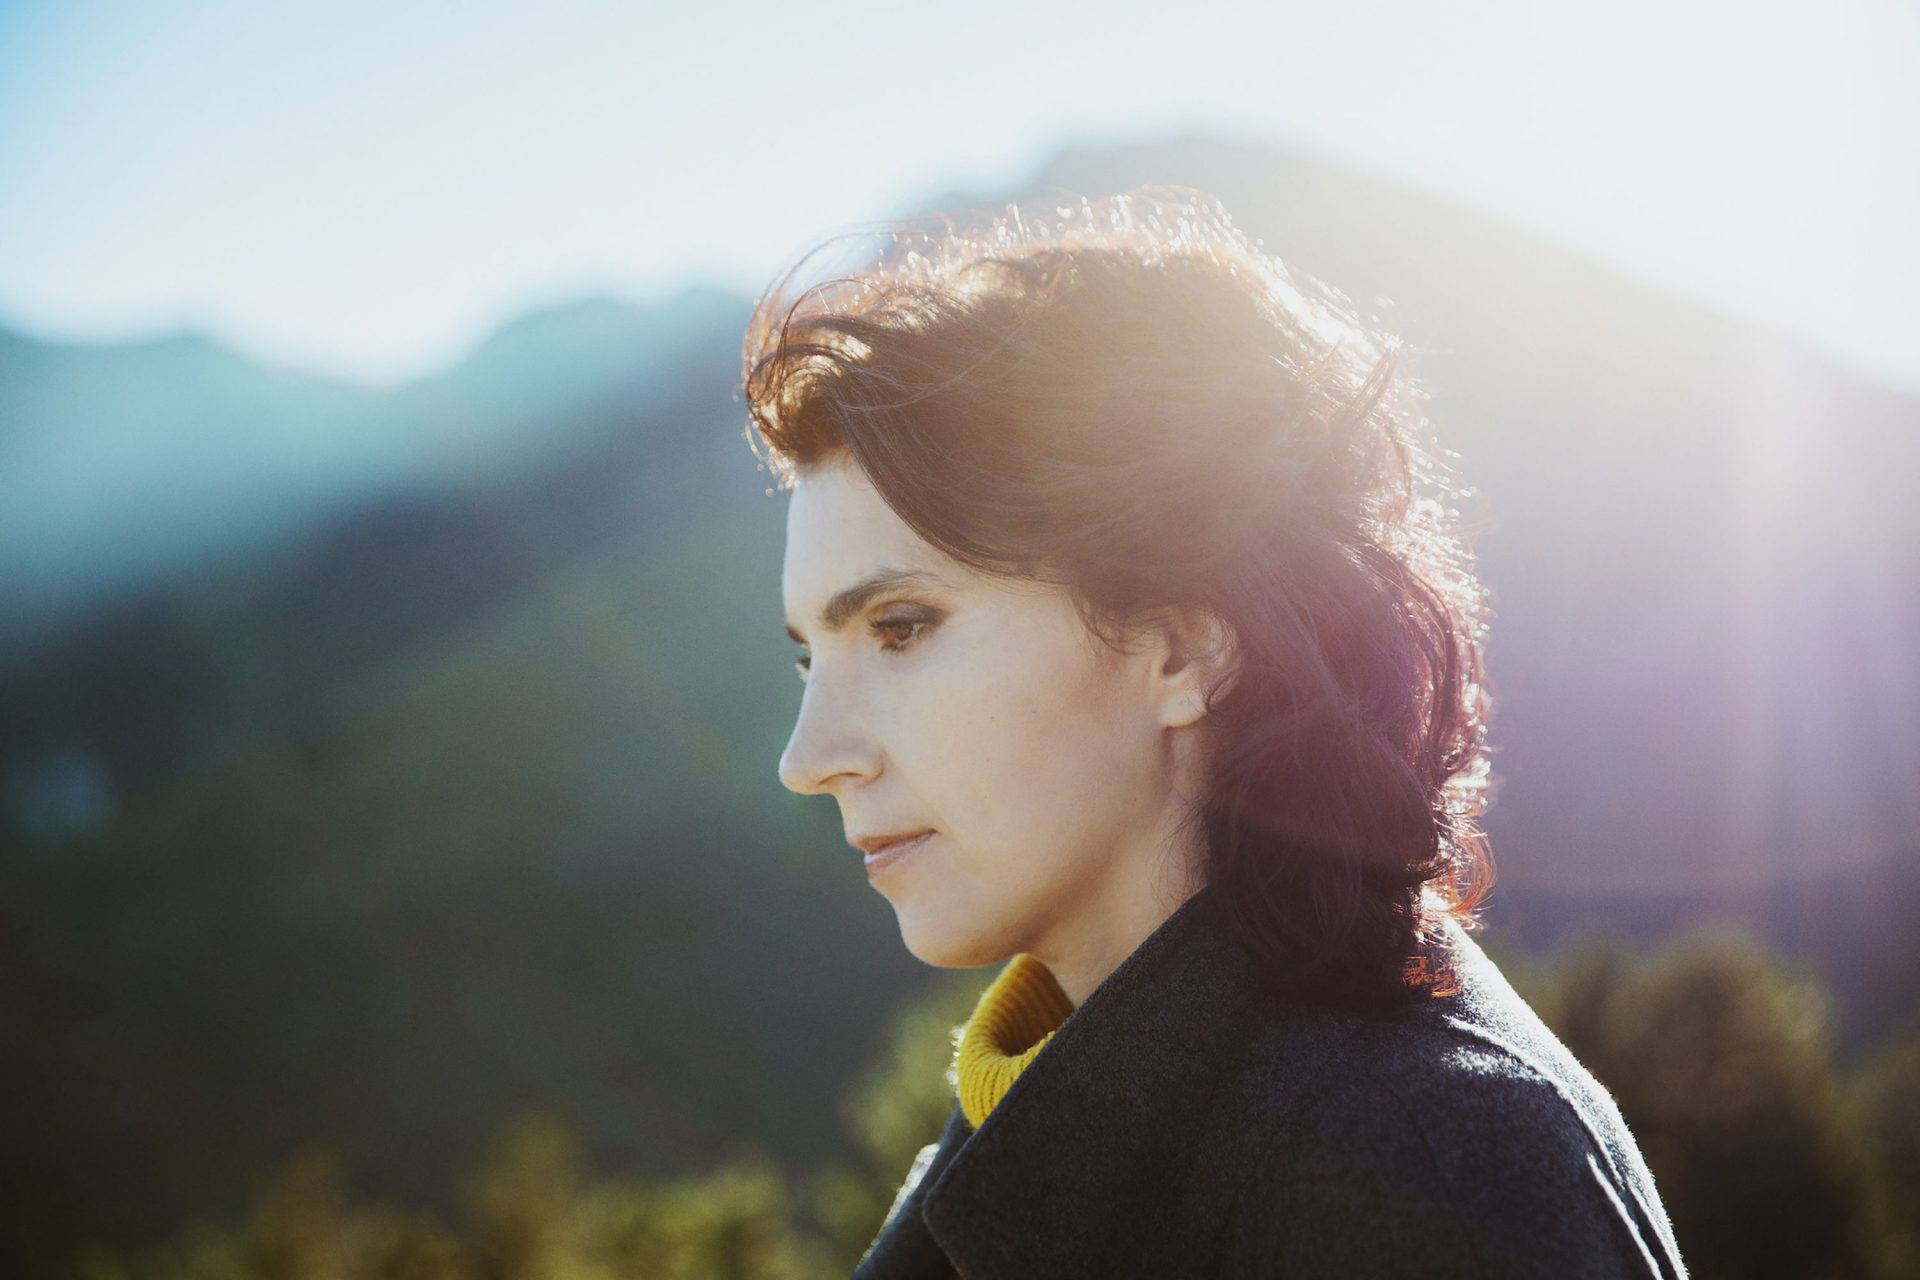 Italian pianist and composer Olivia Belli joins XXIM Records